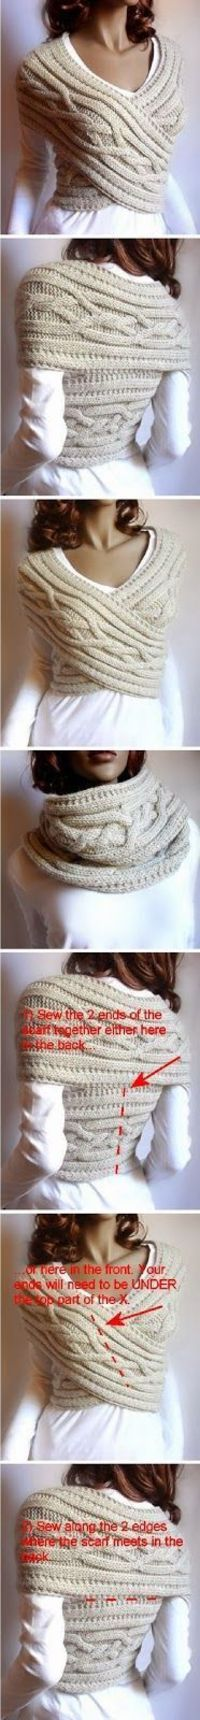 How To Turn Scarf Into Vest